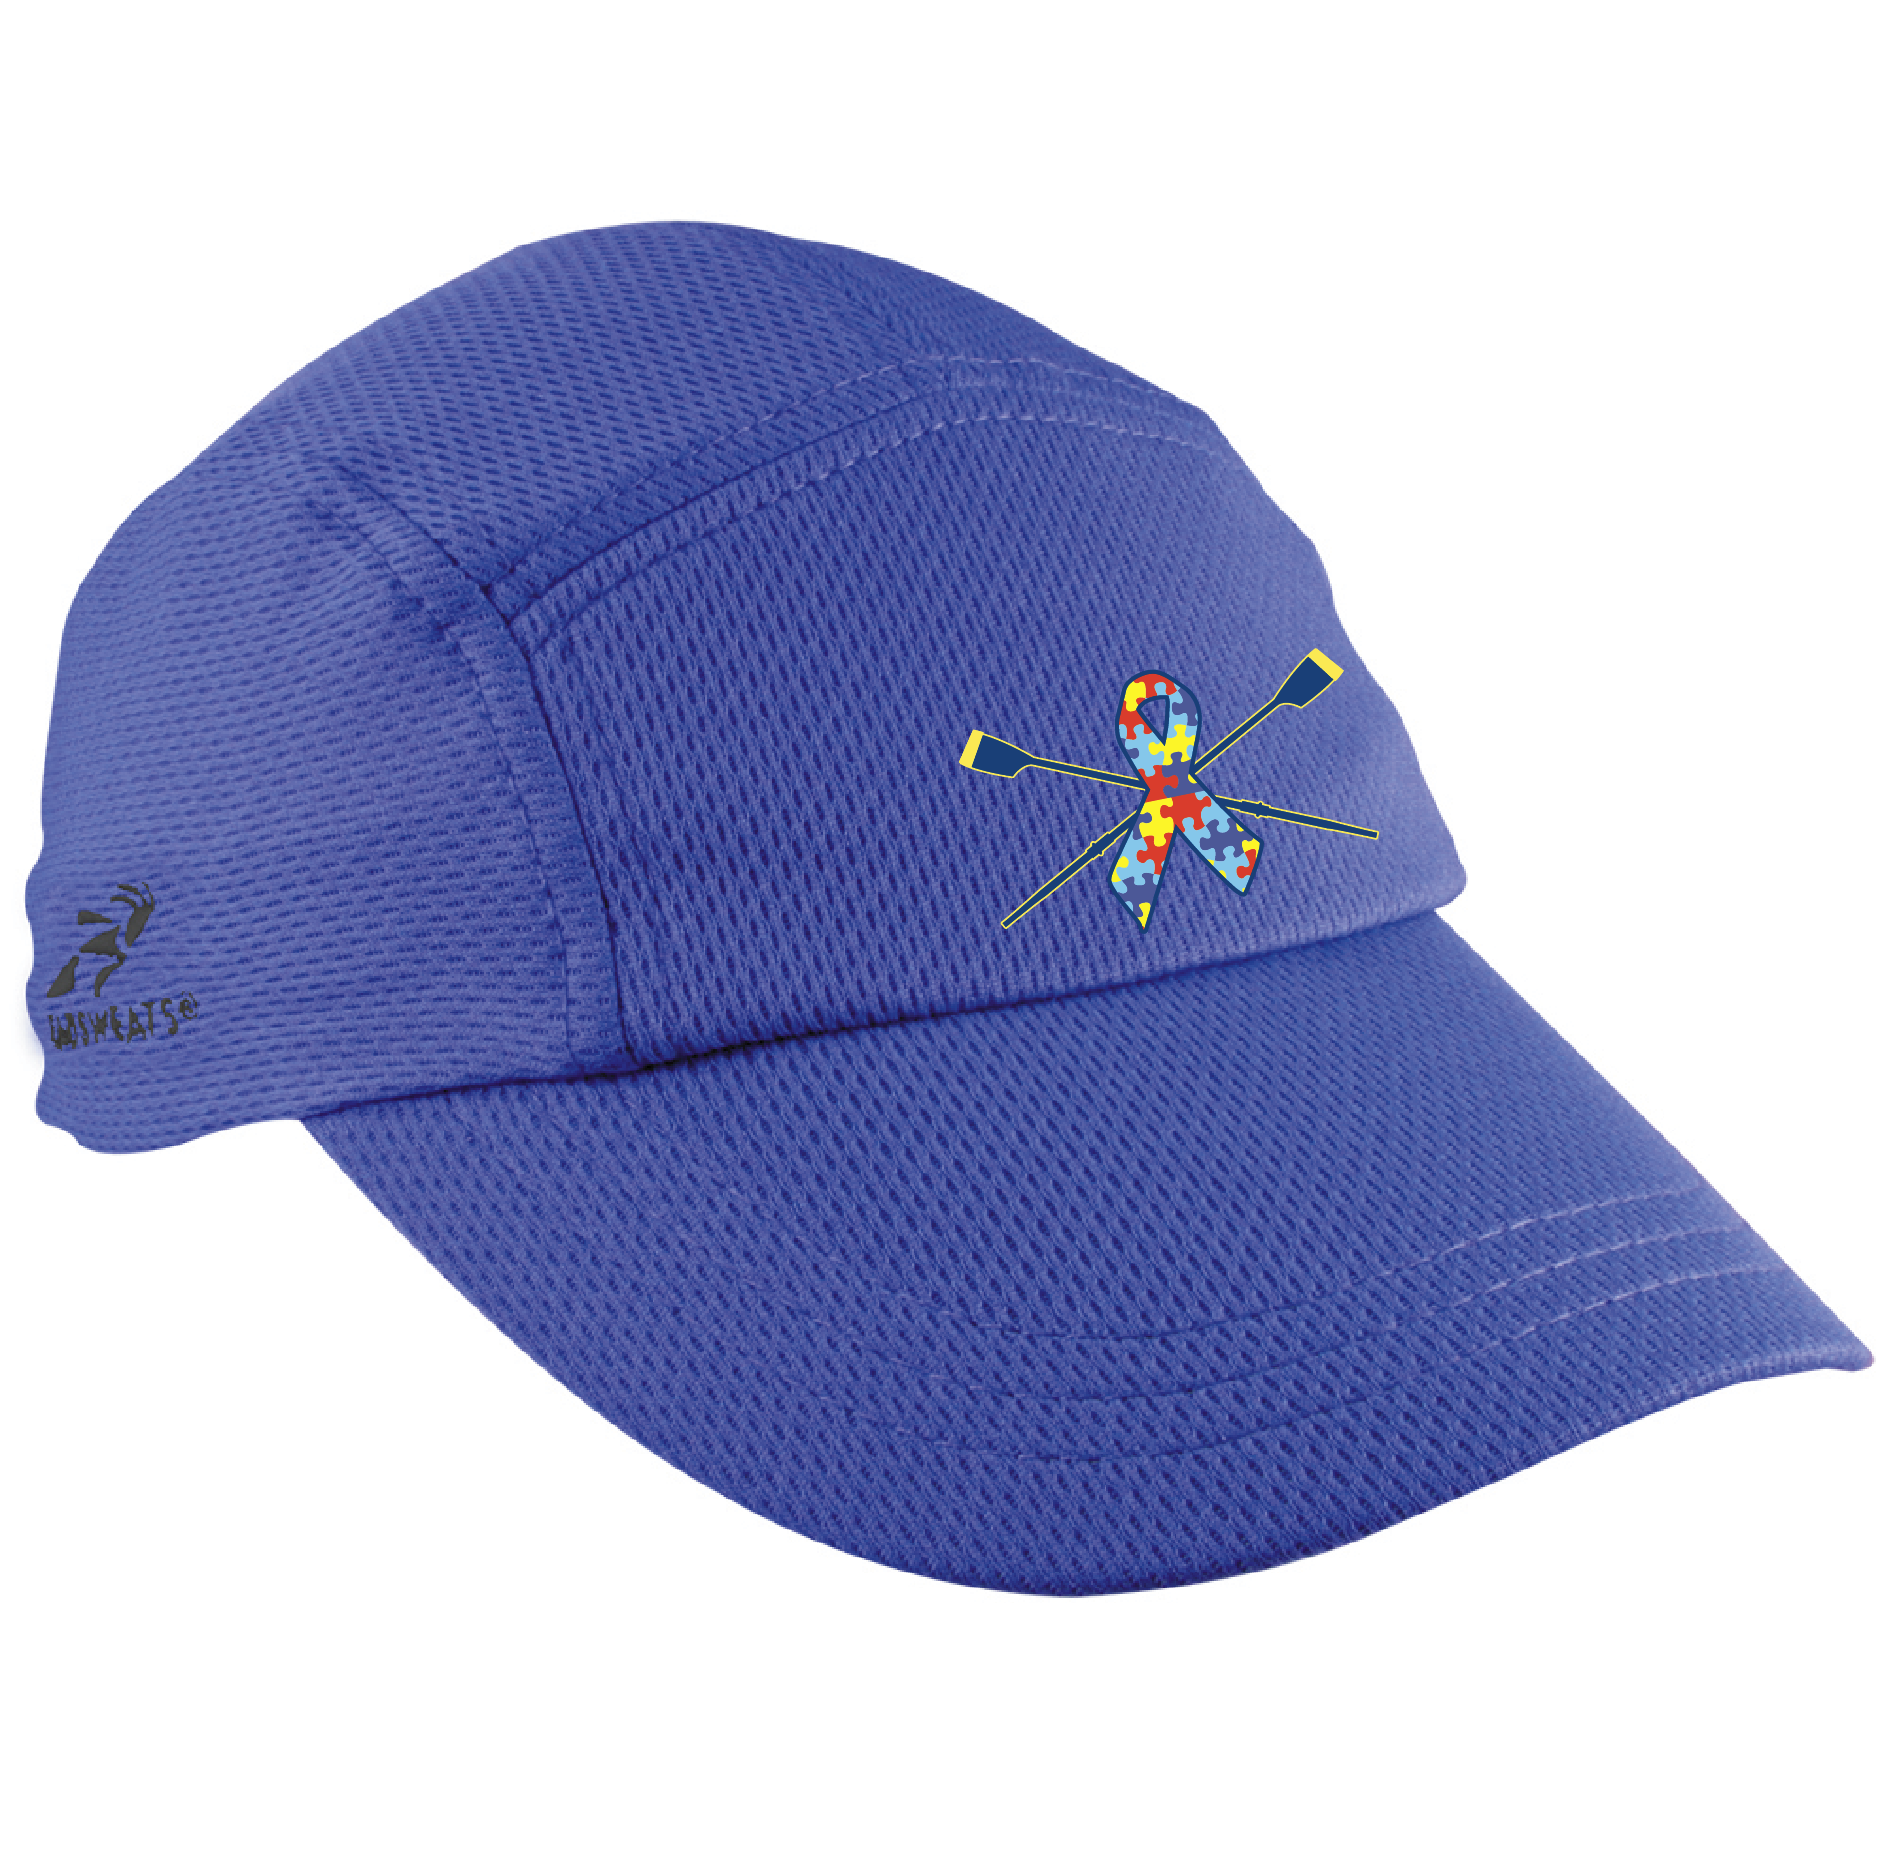 Port Rowing Limited Edition 'Row for Autism' Hat